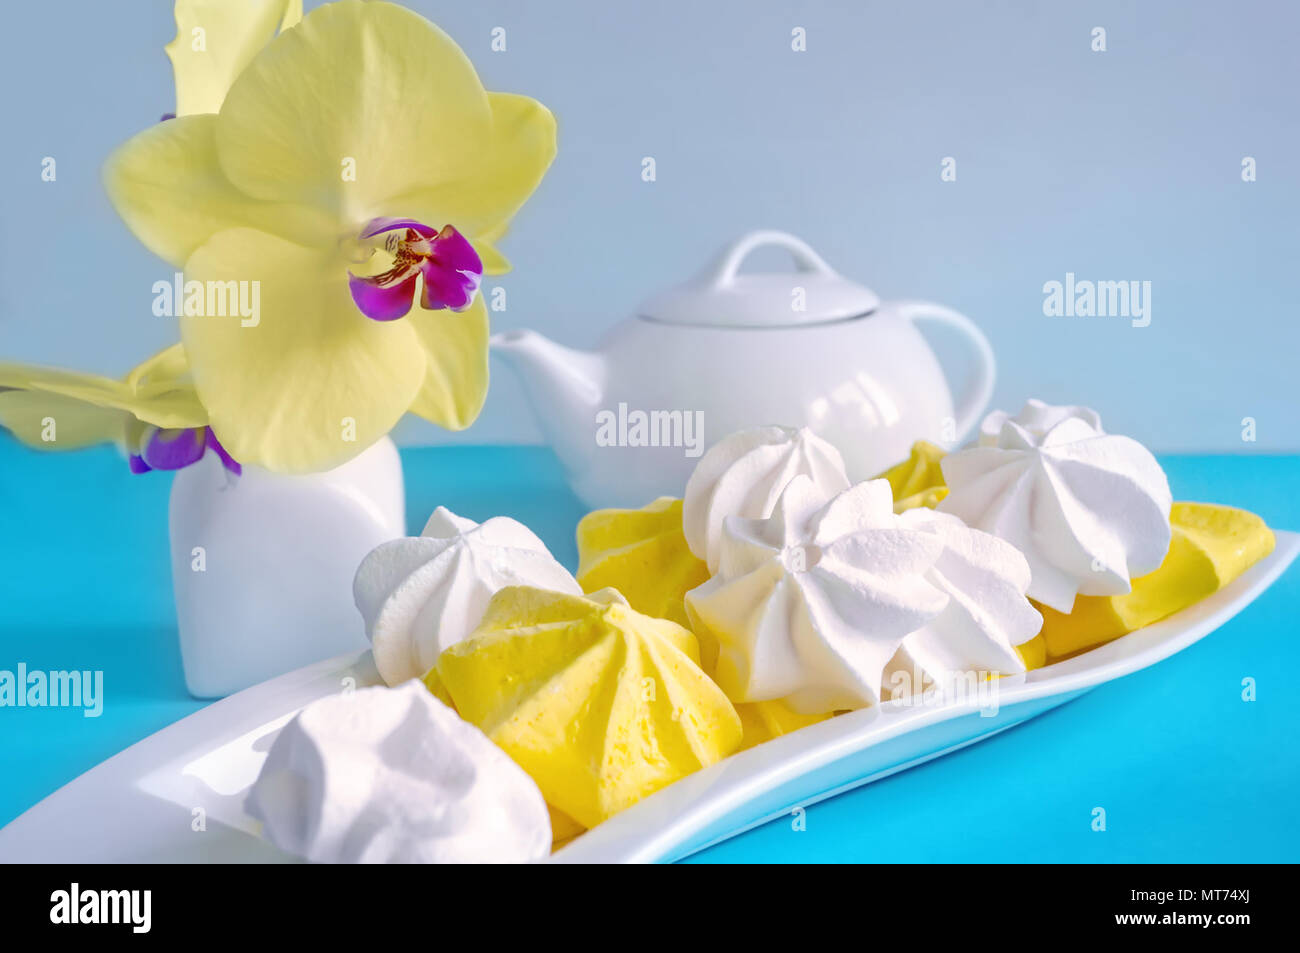 White and yellow meringue on blue background in tea serving with white kettle Stock Photo